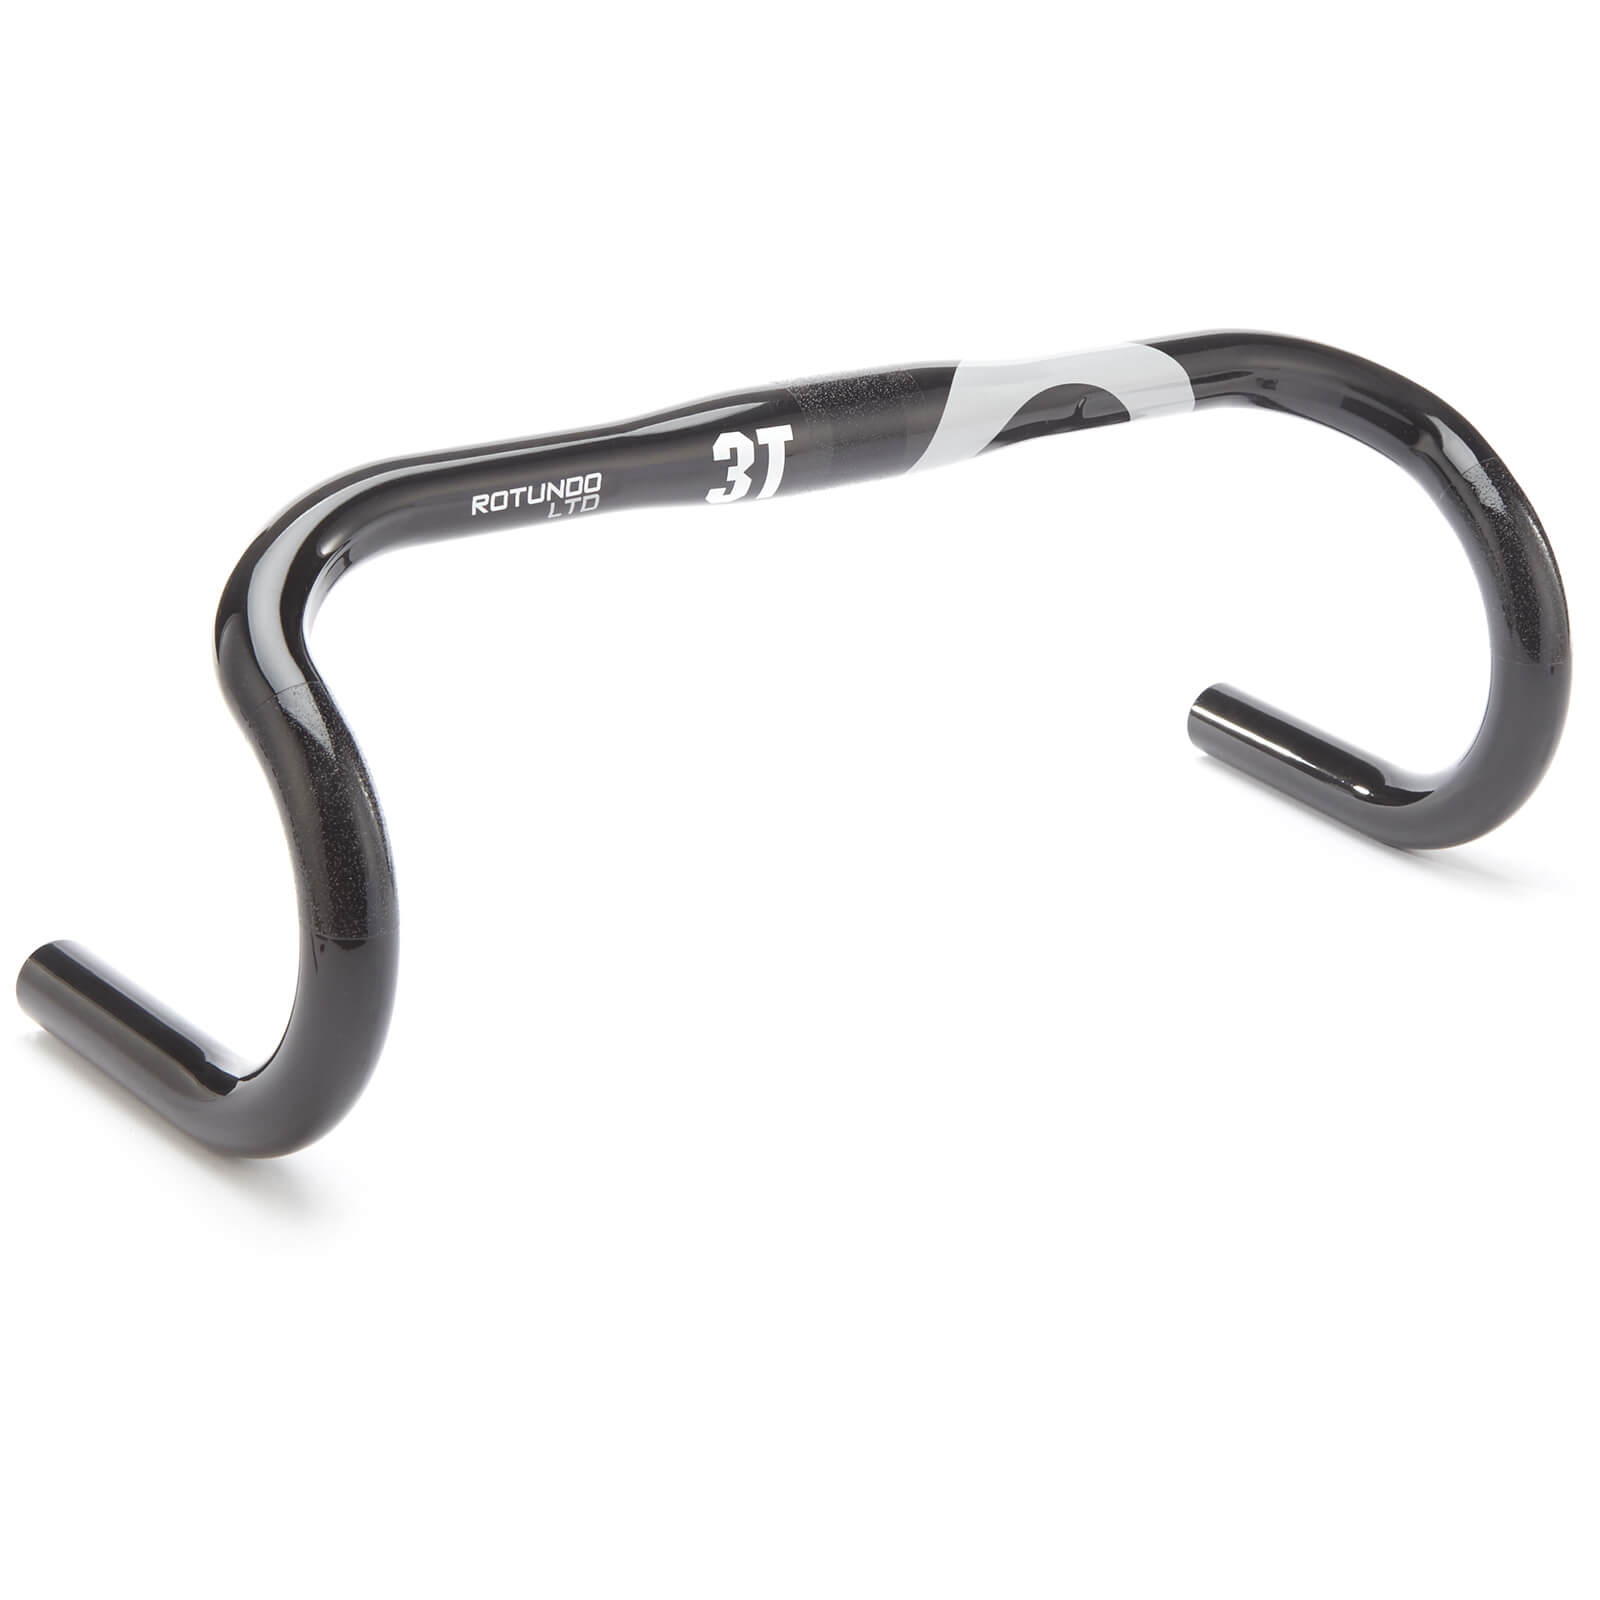 3T Rotundo Ltd Carbon Handlebar - Black/Silver